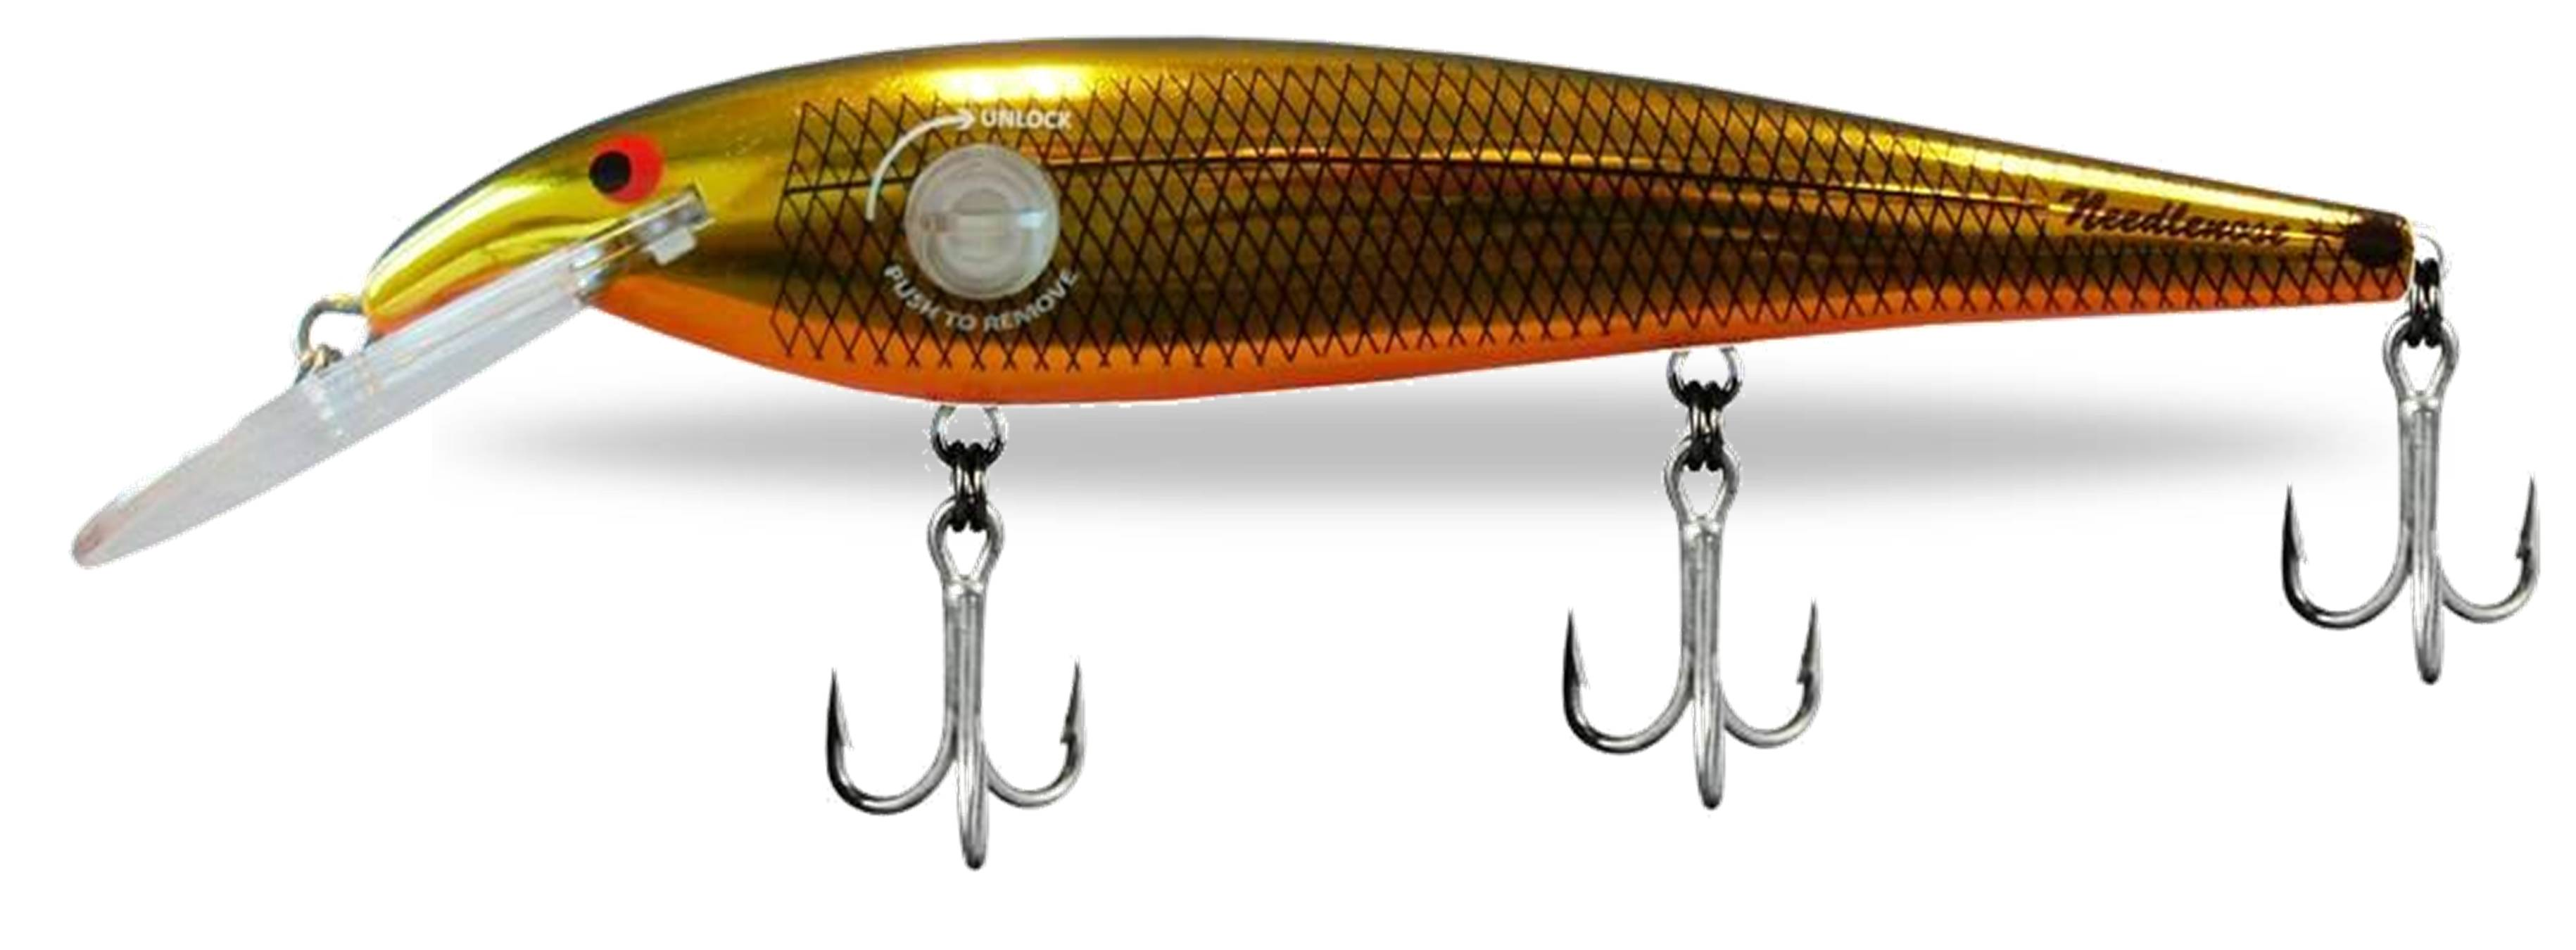 needlenose category killalure lance butler lures lures the needlenose ...